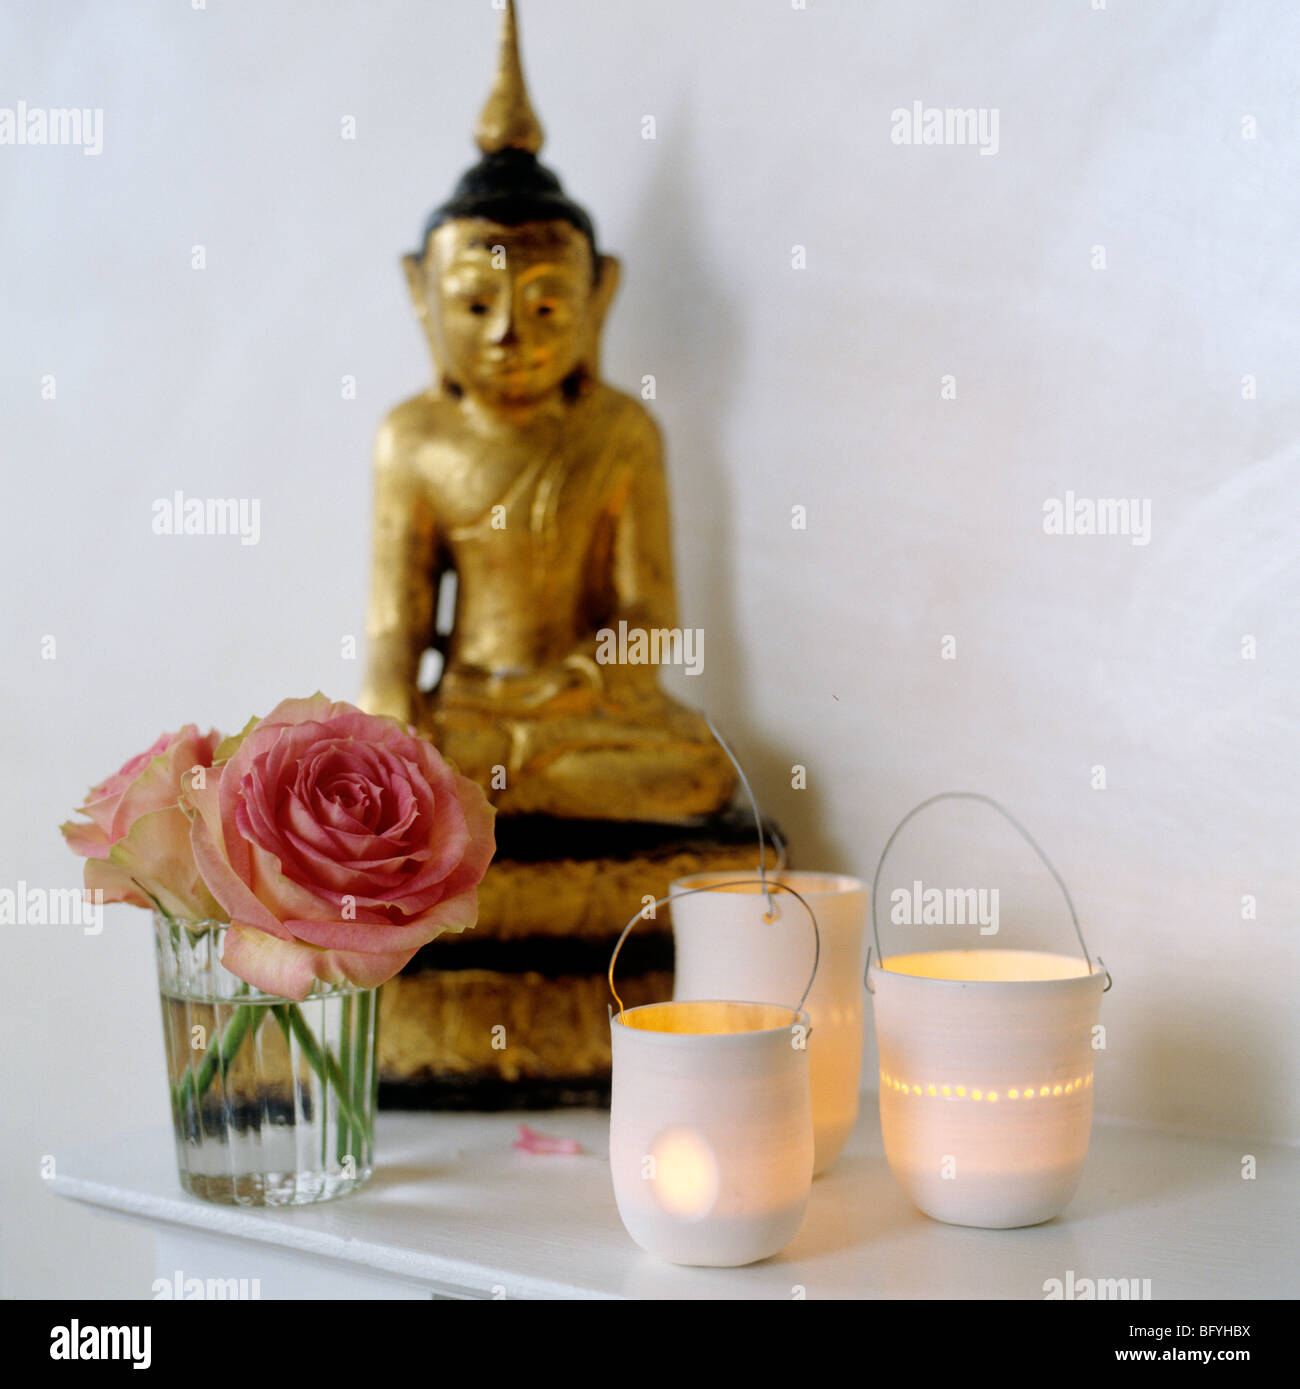 Golden Buddha statue, pink roses and candles on a shelf Stock Photo